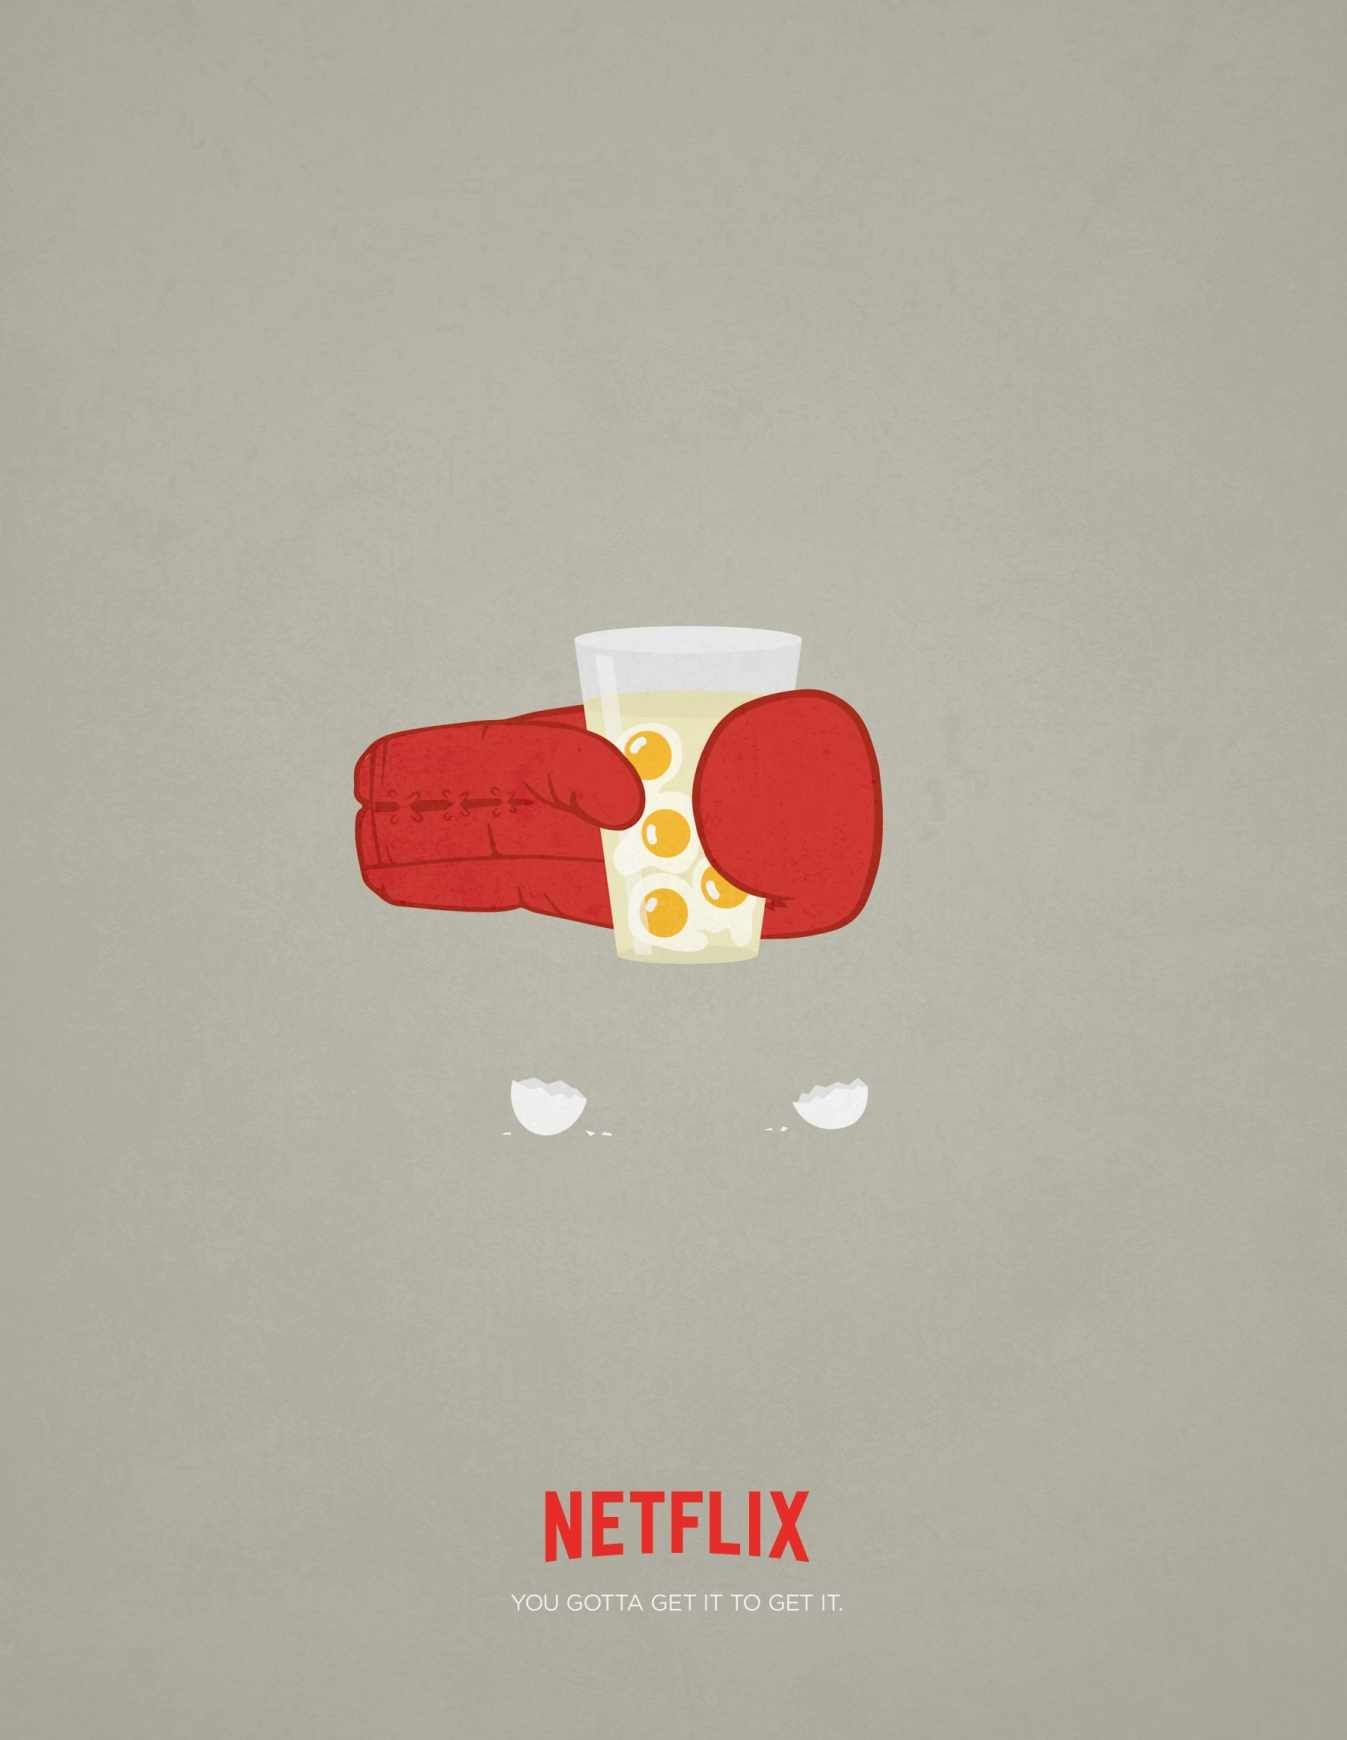 Netflix print ad. You gotta get it to get it. #PrintAd #Advertising ...